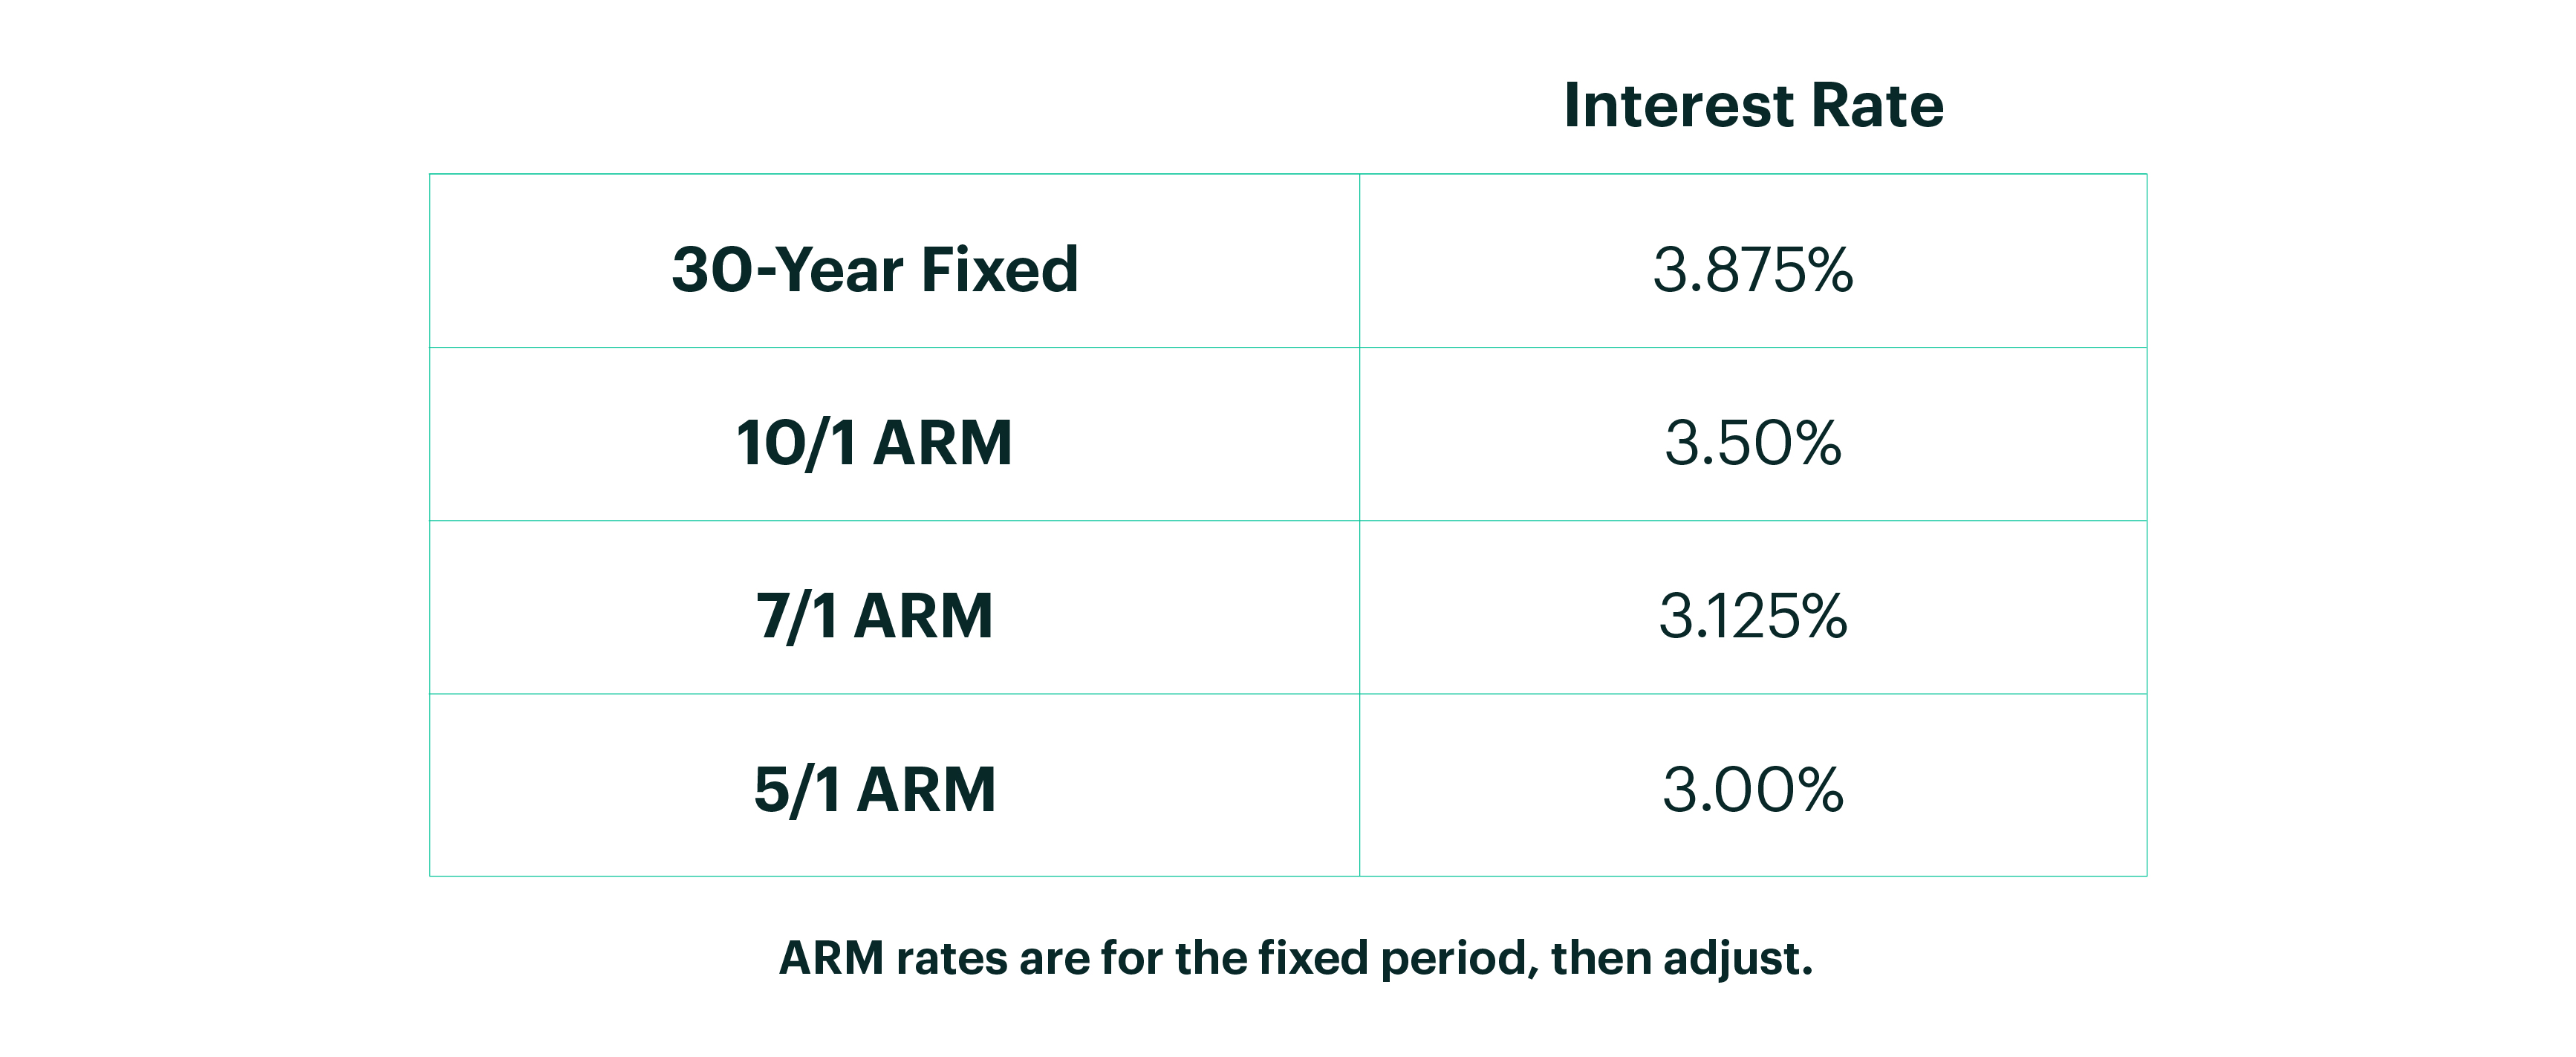 Table of 30 Year Fixed and ARM Rates and Corresponding Interest Rates